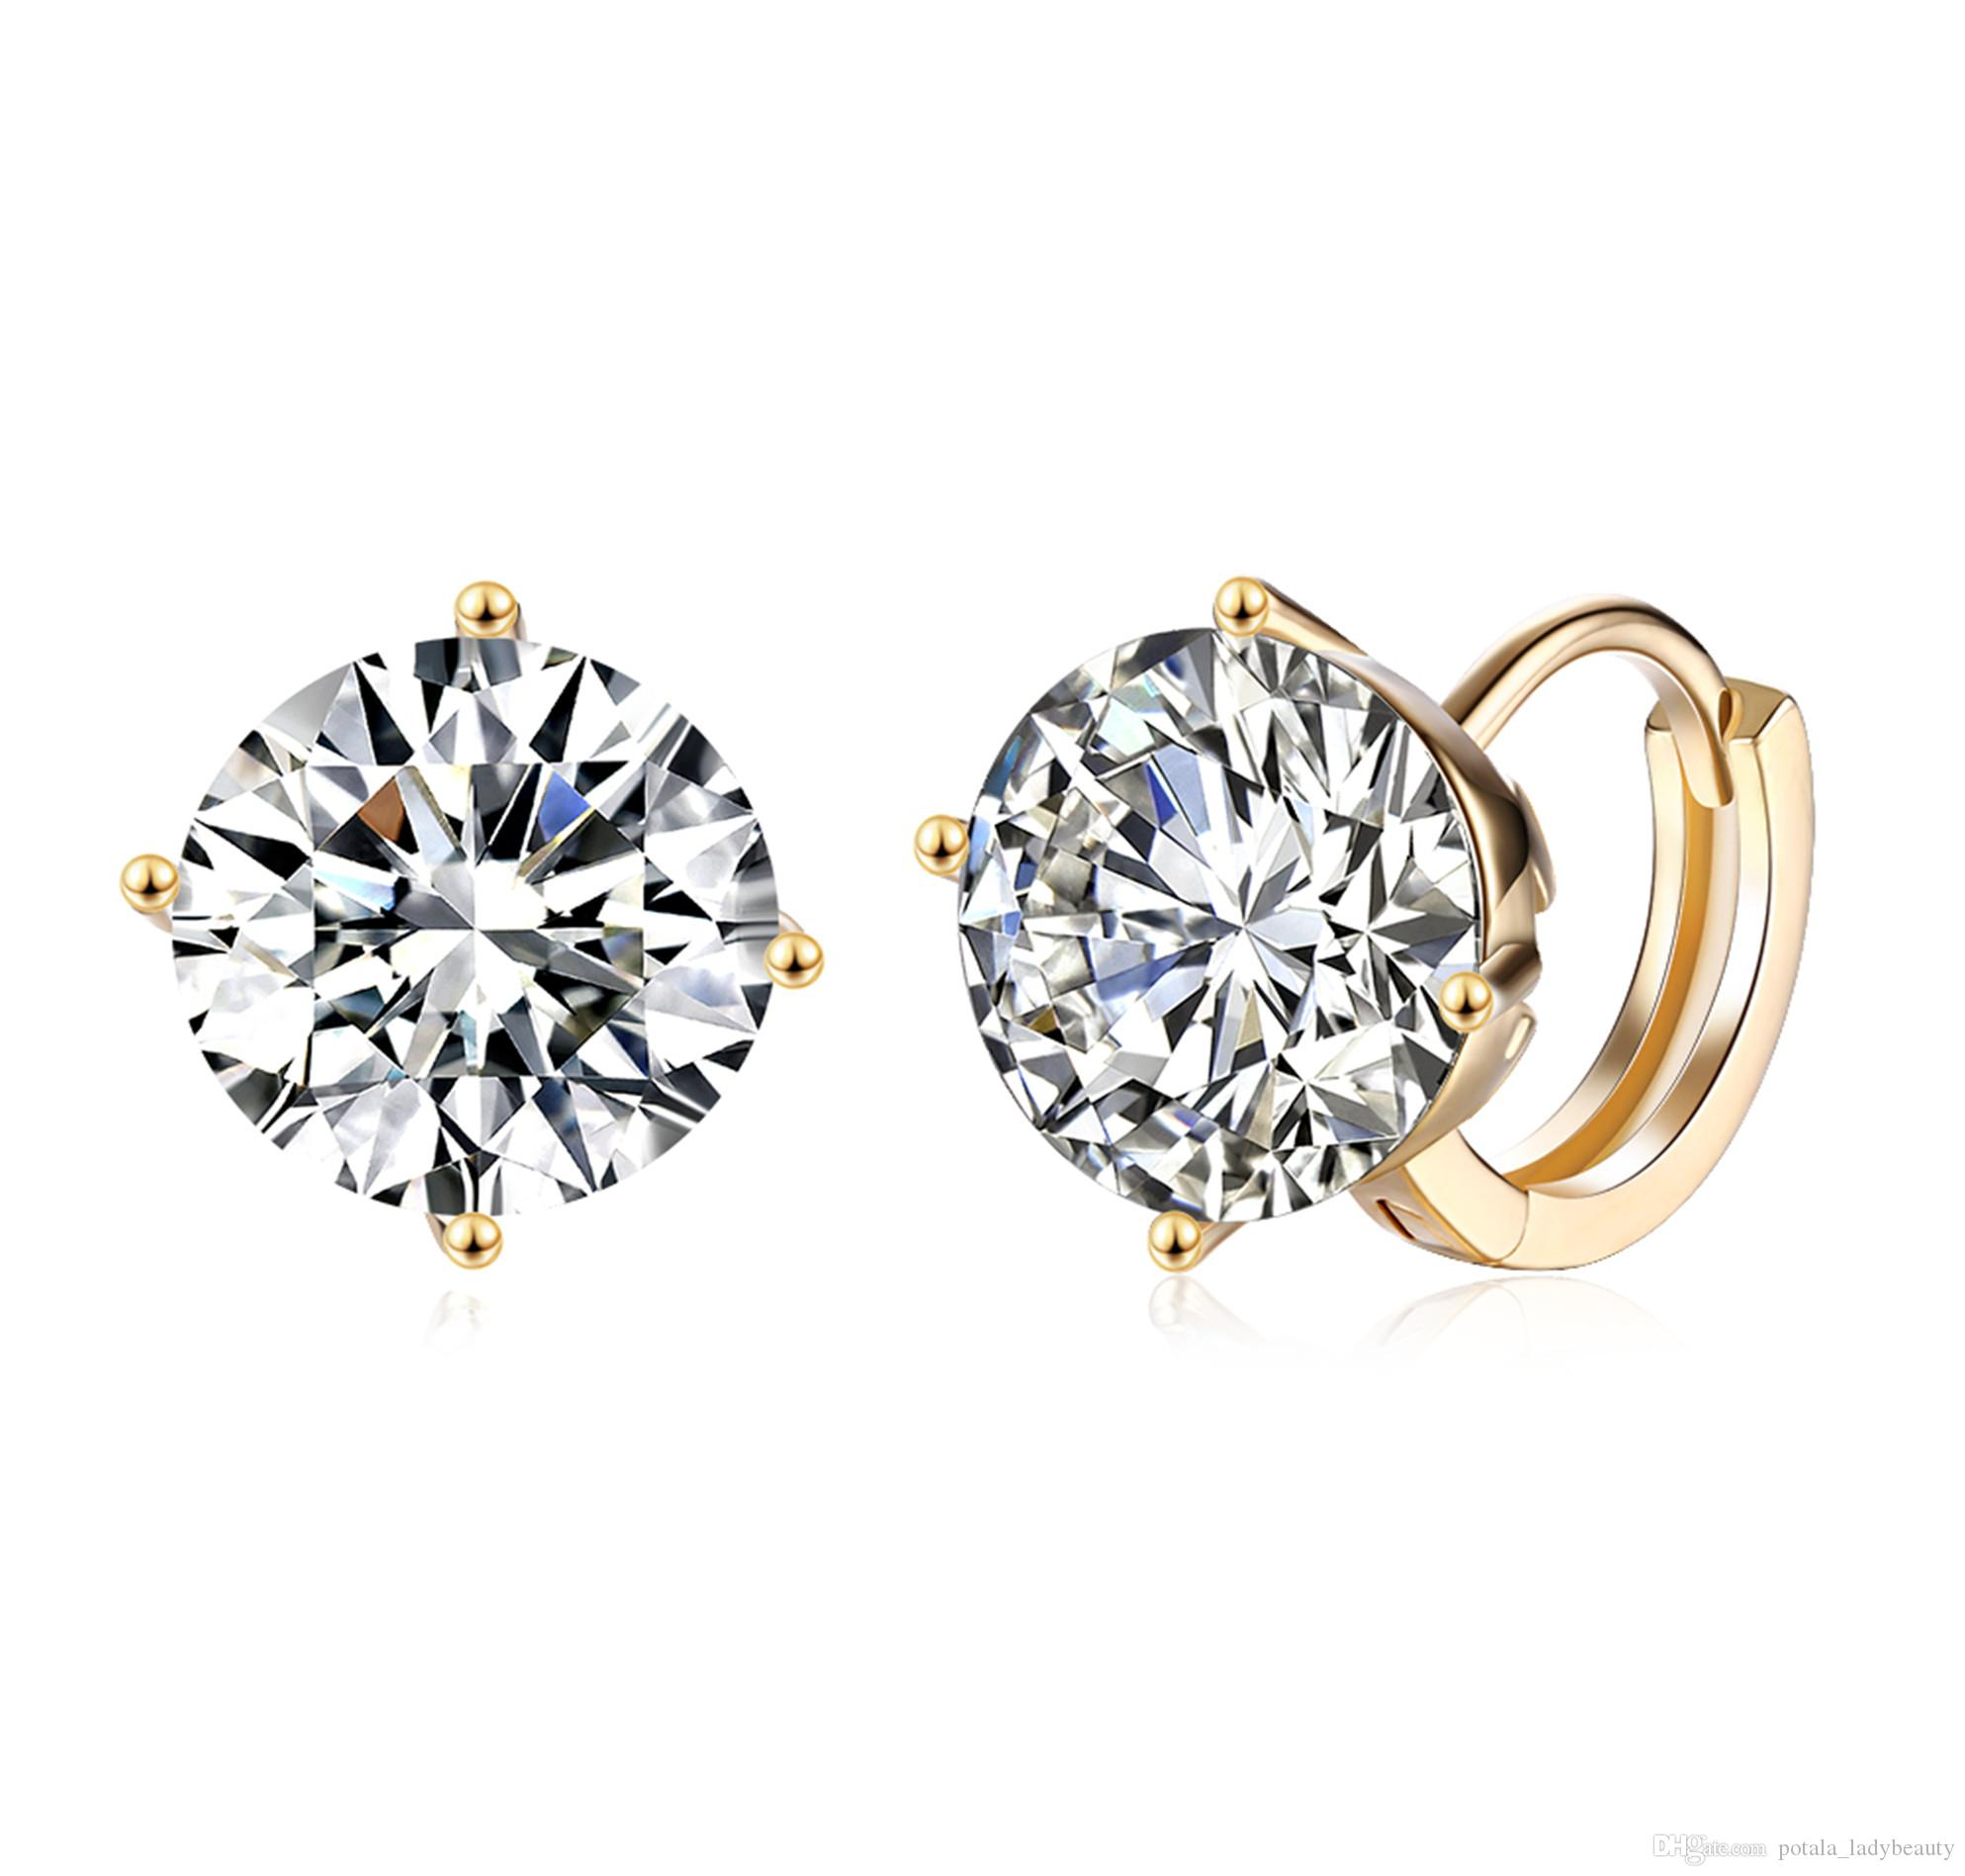 e6335dfe6 2019 Luxury Earrings Round Pattern Mosaic White Zircon Clip On&Screw Back  Earring Accessories Simple Elegant Christmas Romantic Gifts POTALA150 From  ...